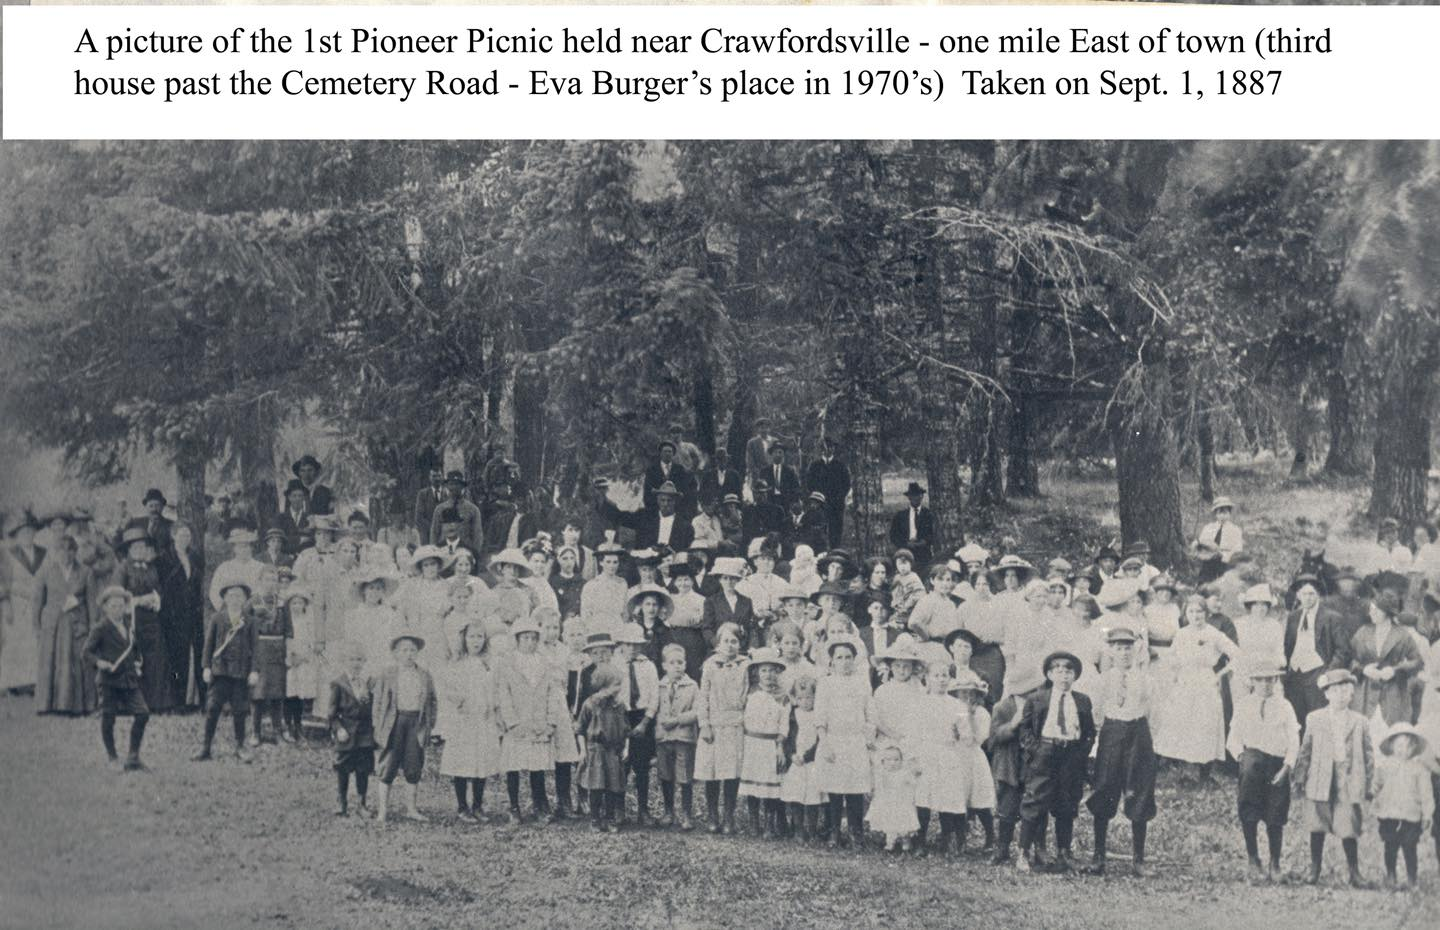 photo of first Linn county Oregon Pioneer Picnic